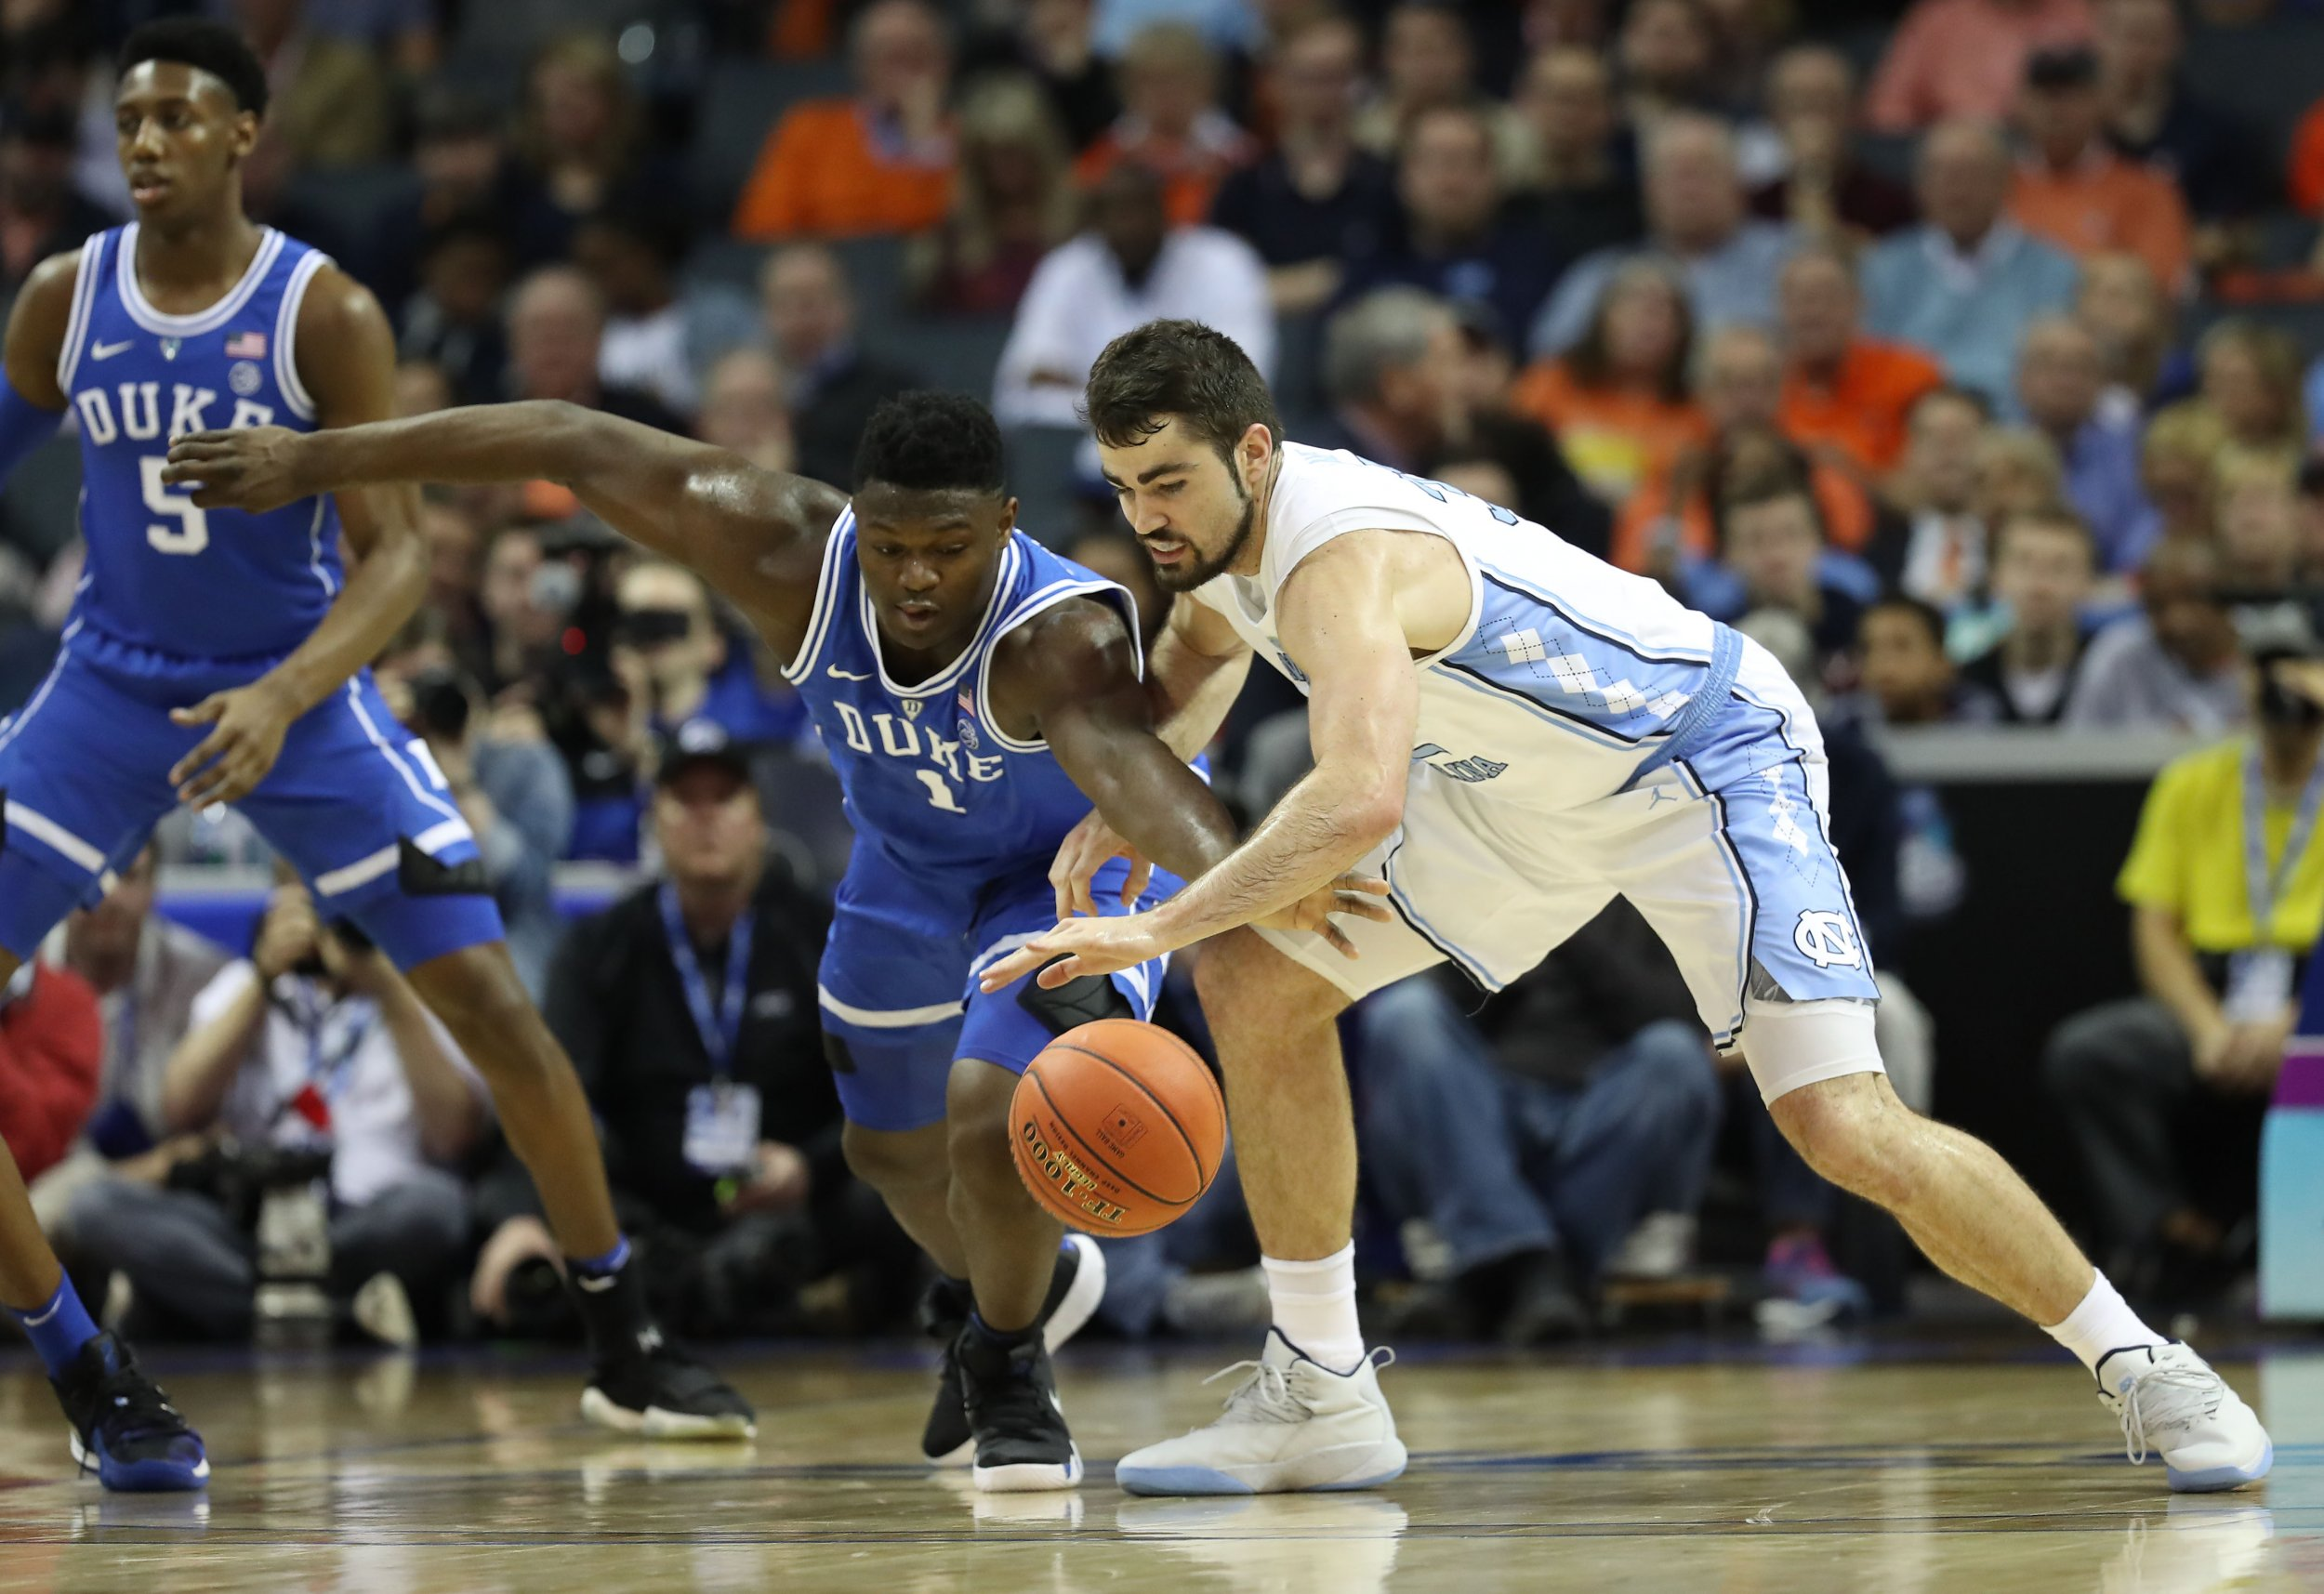 Duke Blue Devils, North Carolina Tar Heels